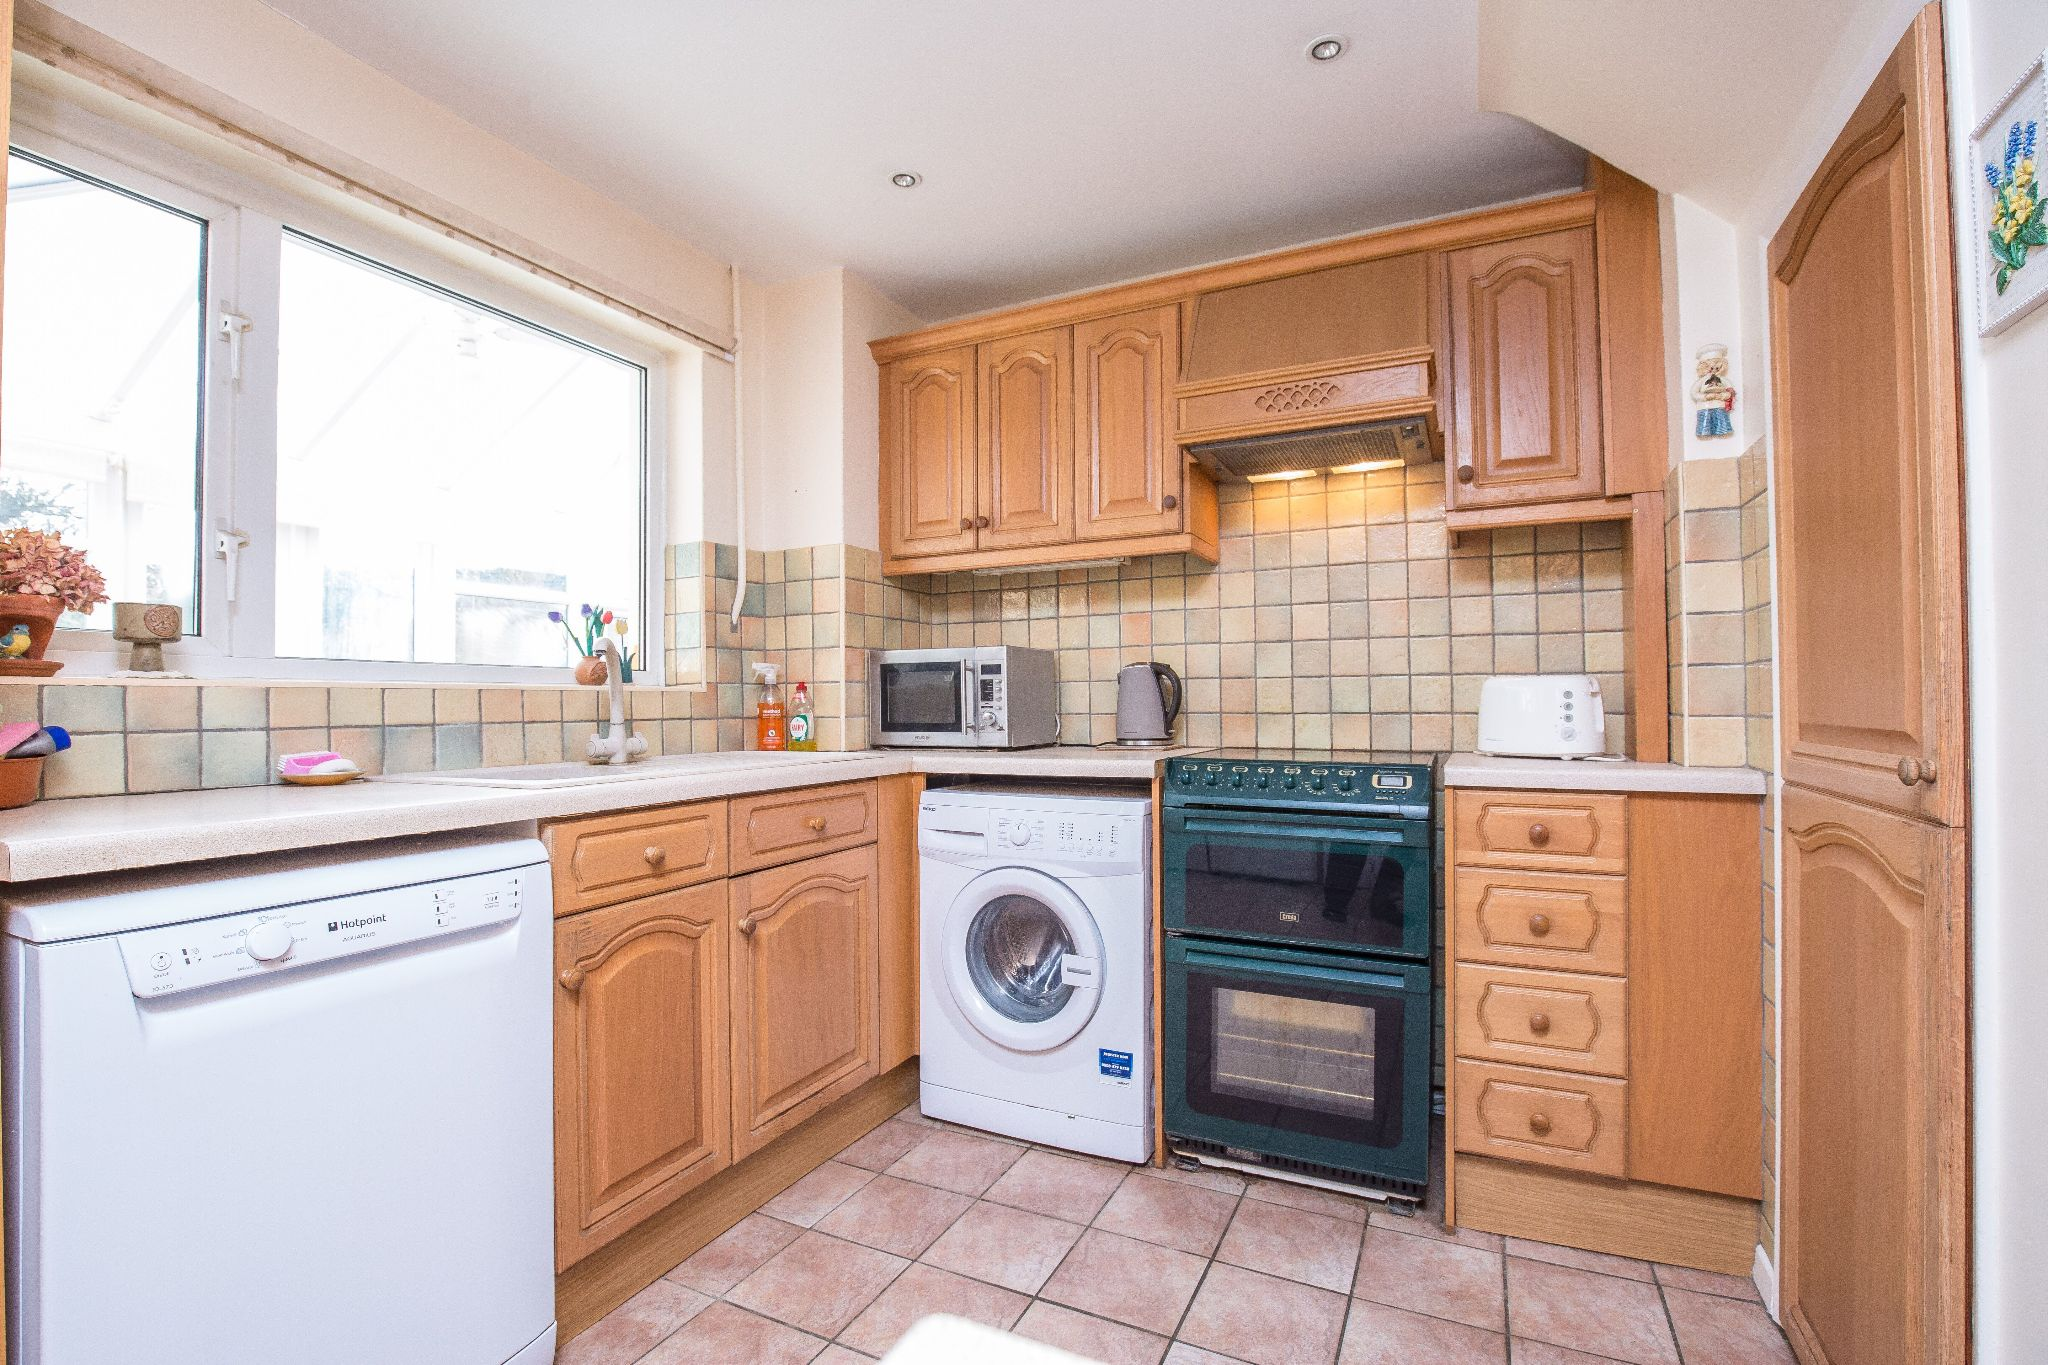 3 bedroom mid terraced house SSTC in Welham Green - Photograph 5